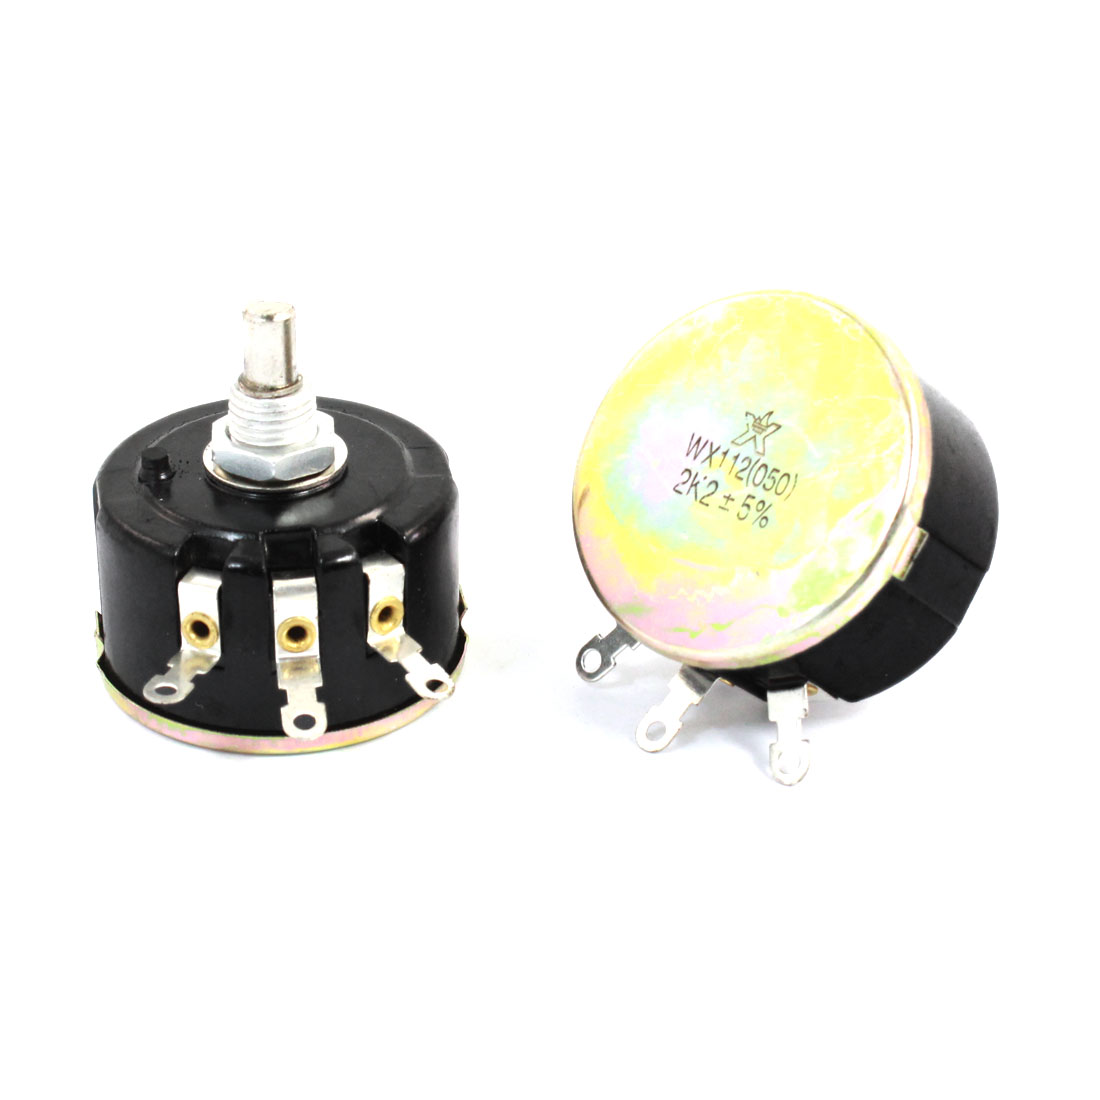 2pcs WX112(050) Round Shaft 3 Terminals Wire Wound Potentiometer 2.2K Ohm 5W